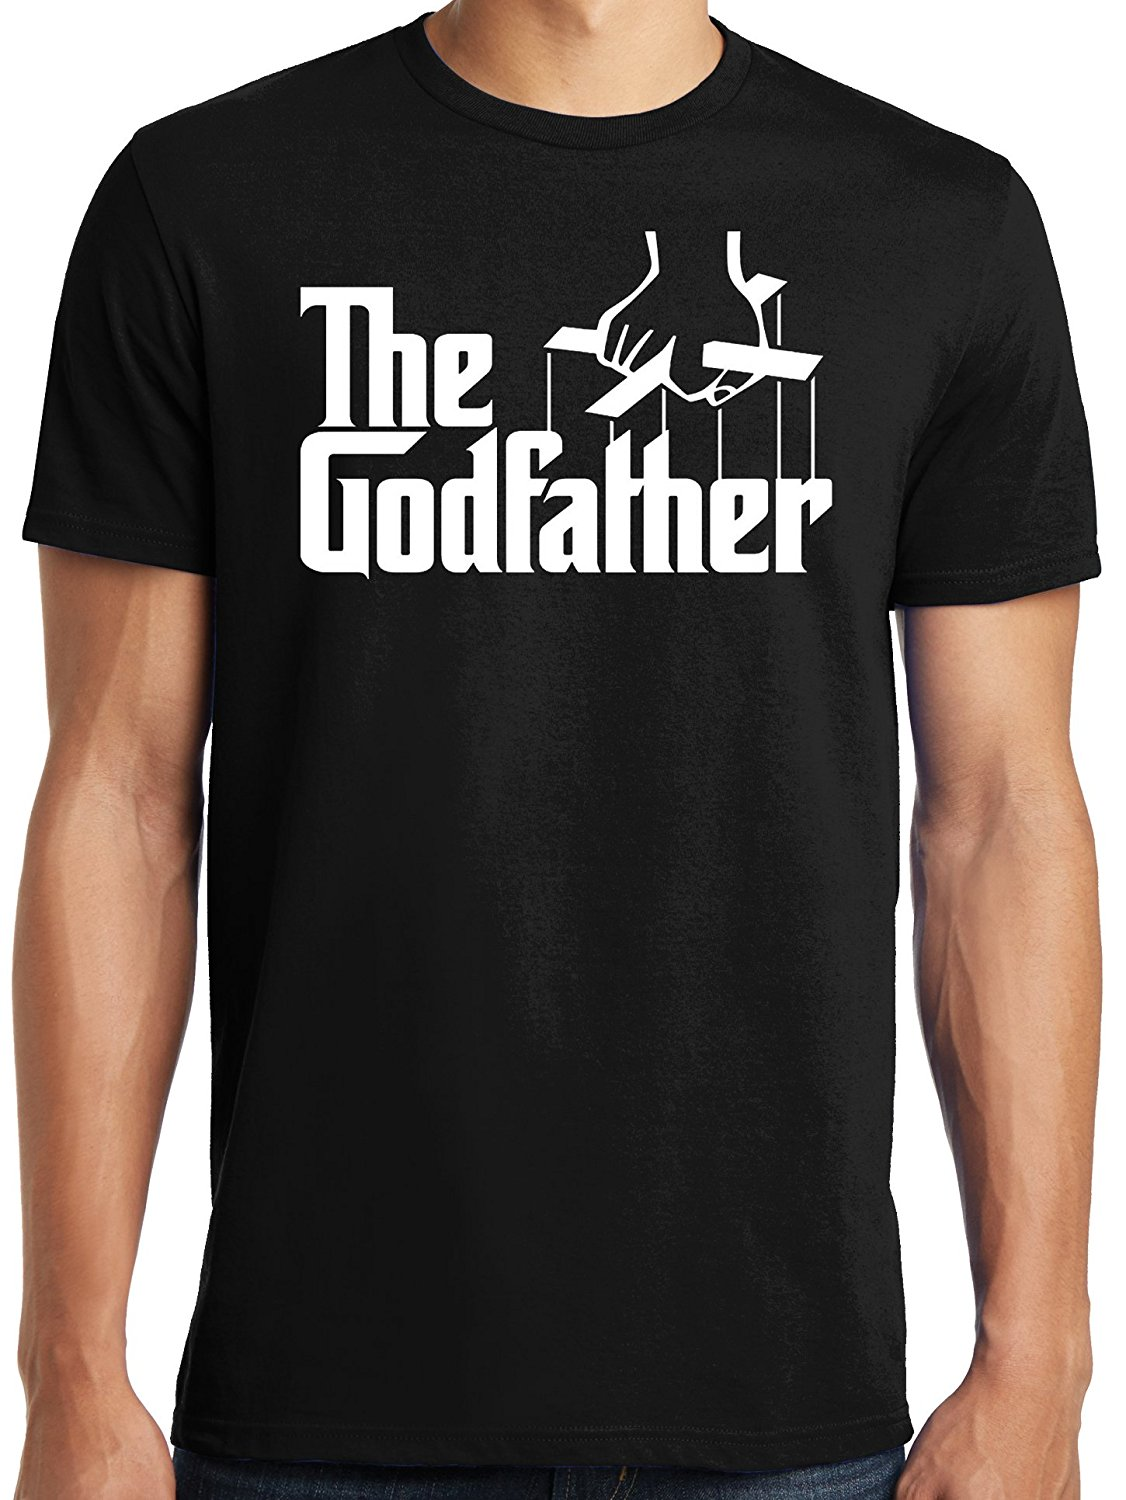 PubliciTeeZ The Godfather Italian Mob Men's T-Shirt Big and Tall Sizes Available T Shirts Casual Brand Clothing Cotton